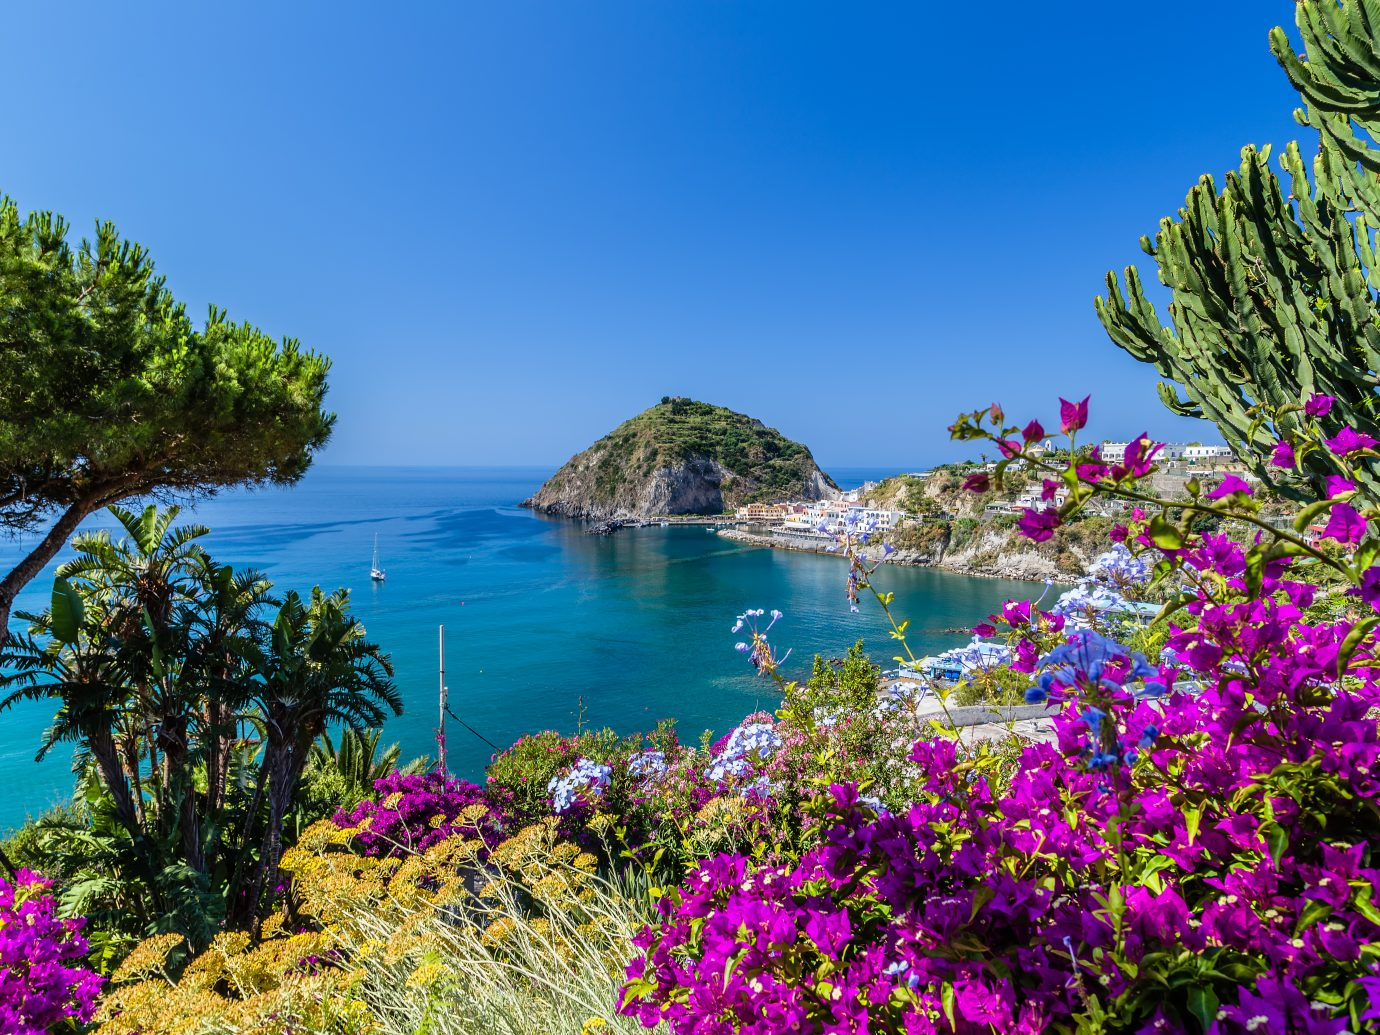 A view of Sant'Angelo in Ischia island in Italy: Tyrrhenian sea, bougaiunvillea glabra, rocks, water, umbrella, sand and old typical houses in the island in front of Naples in Campania region in a sunny day